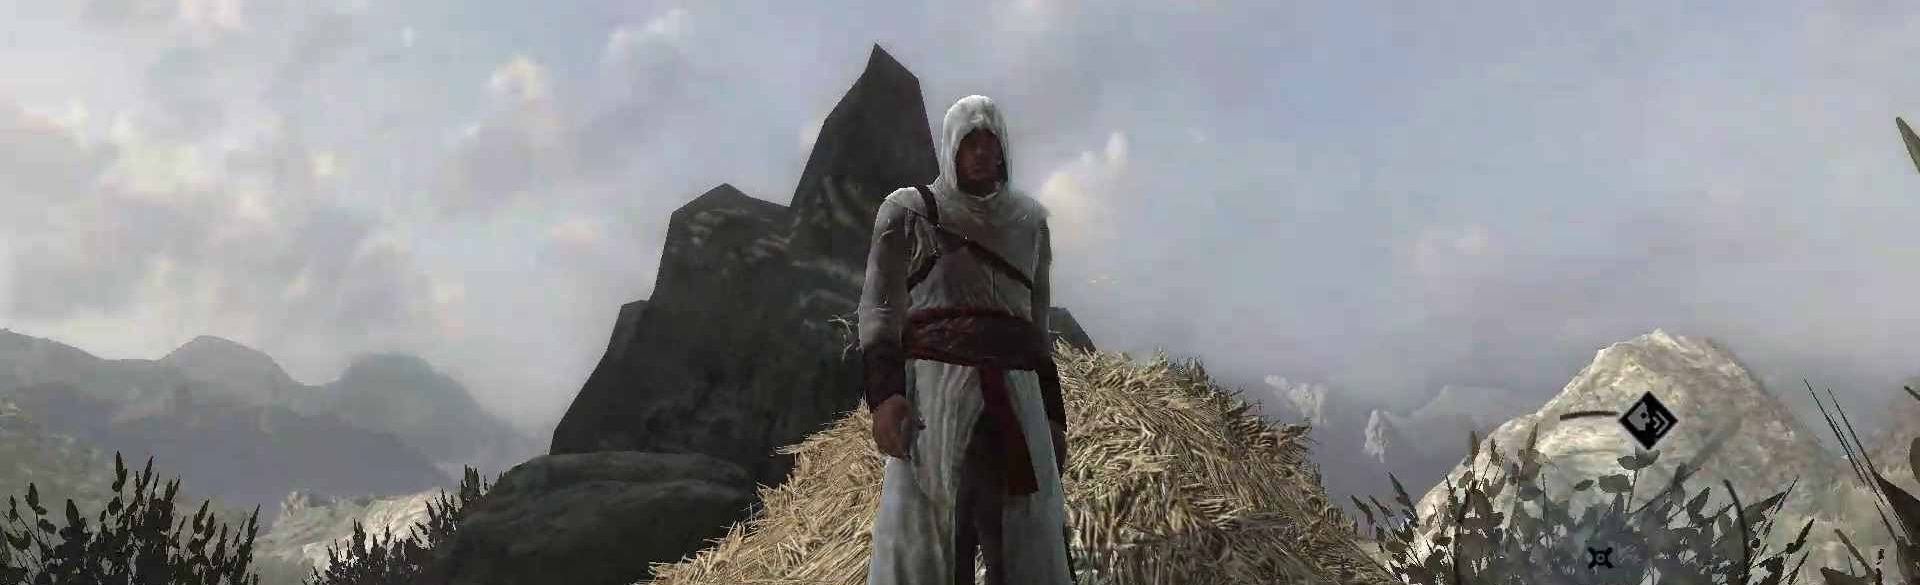 assassin's creed 1 highly compressed in 2.96 GB download for pc